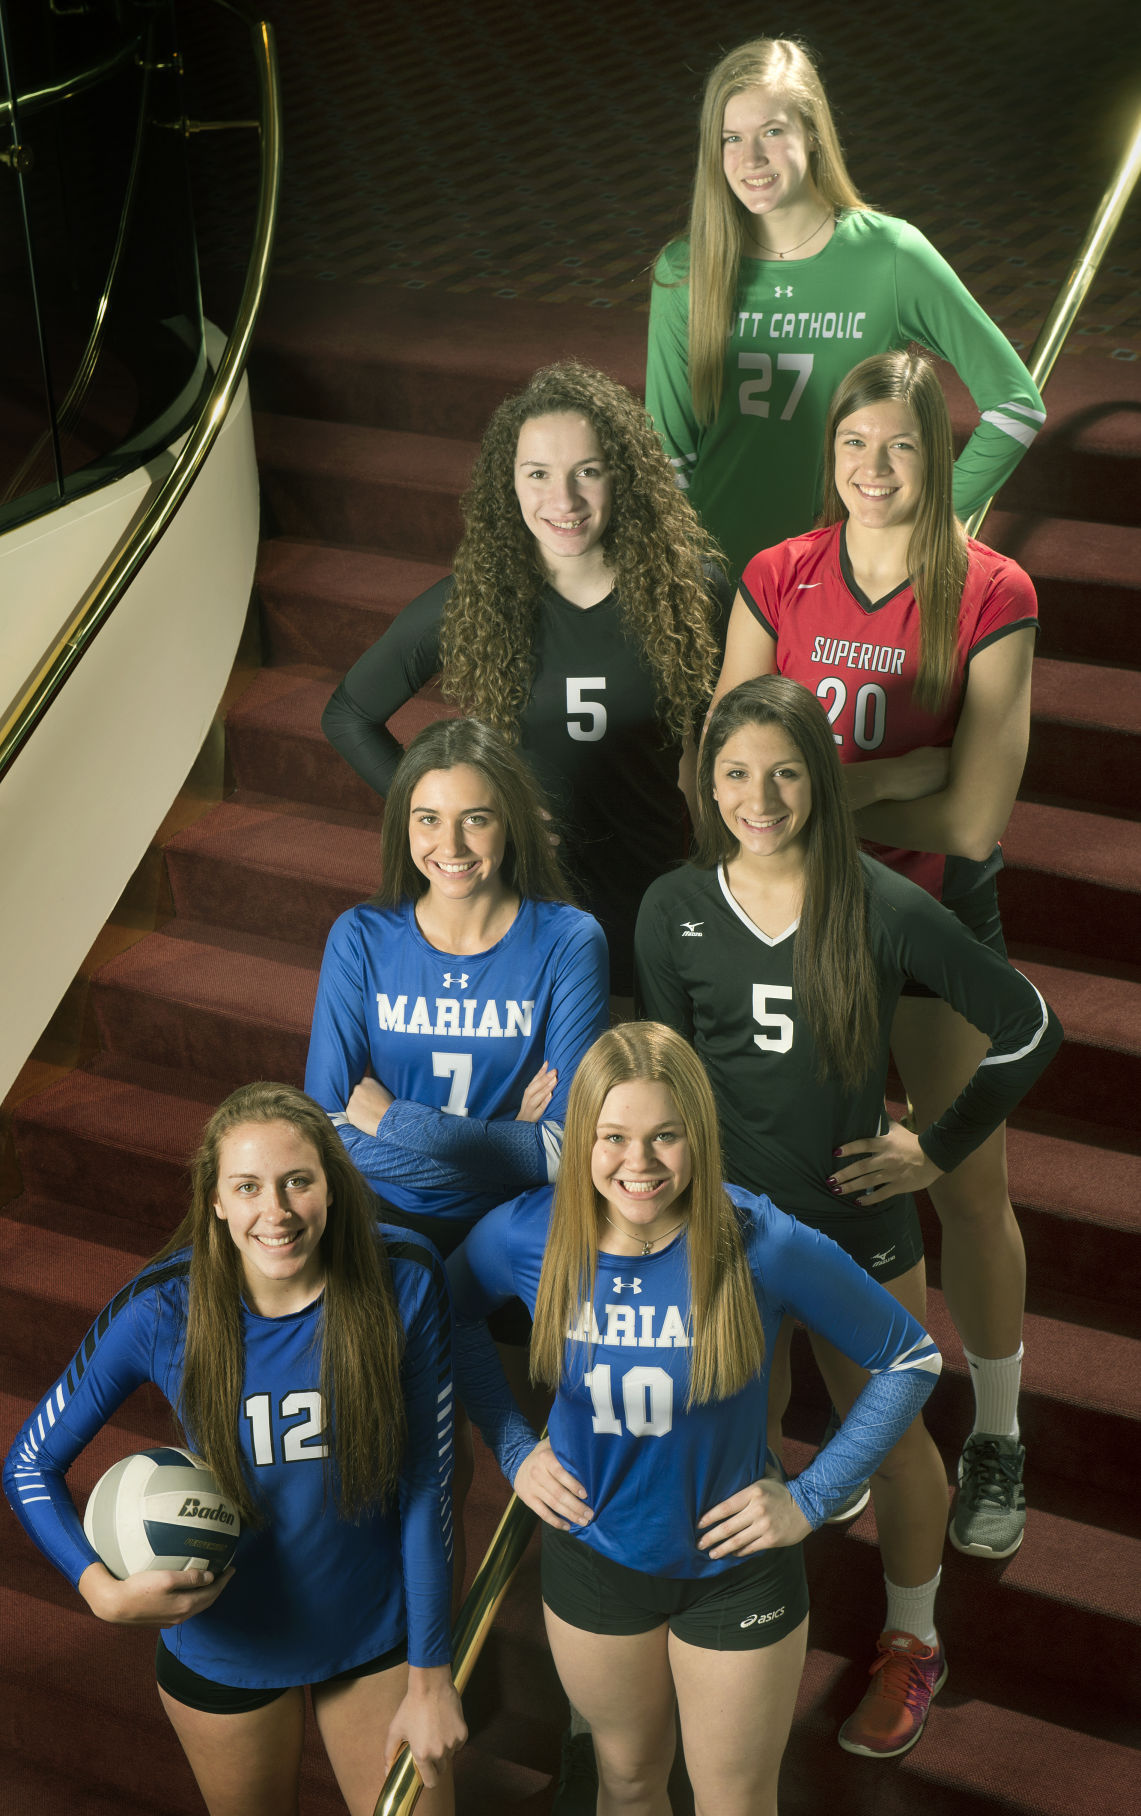 Super-State volleyball team